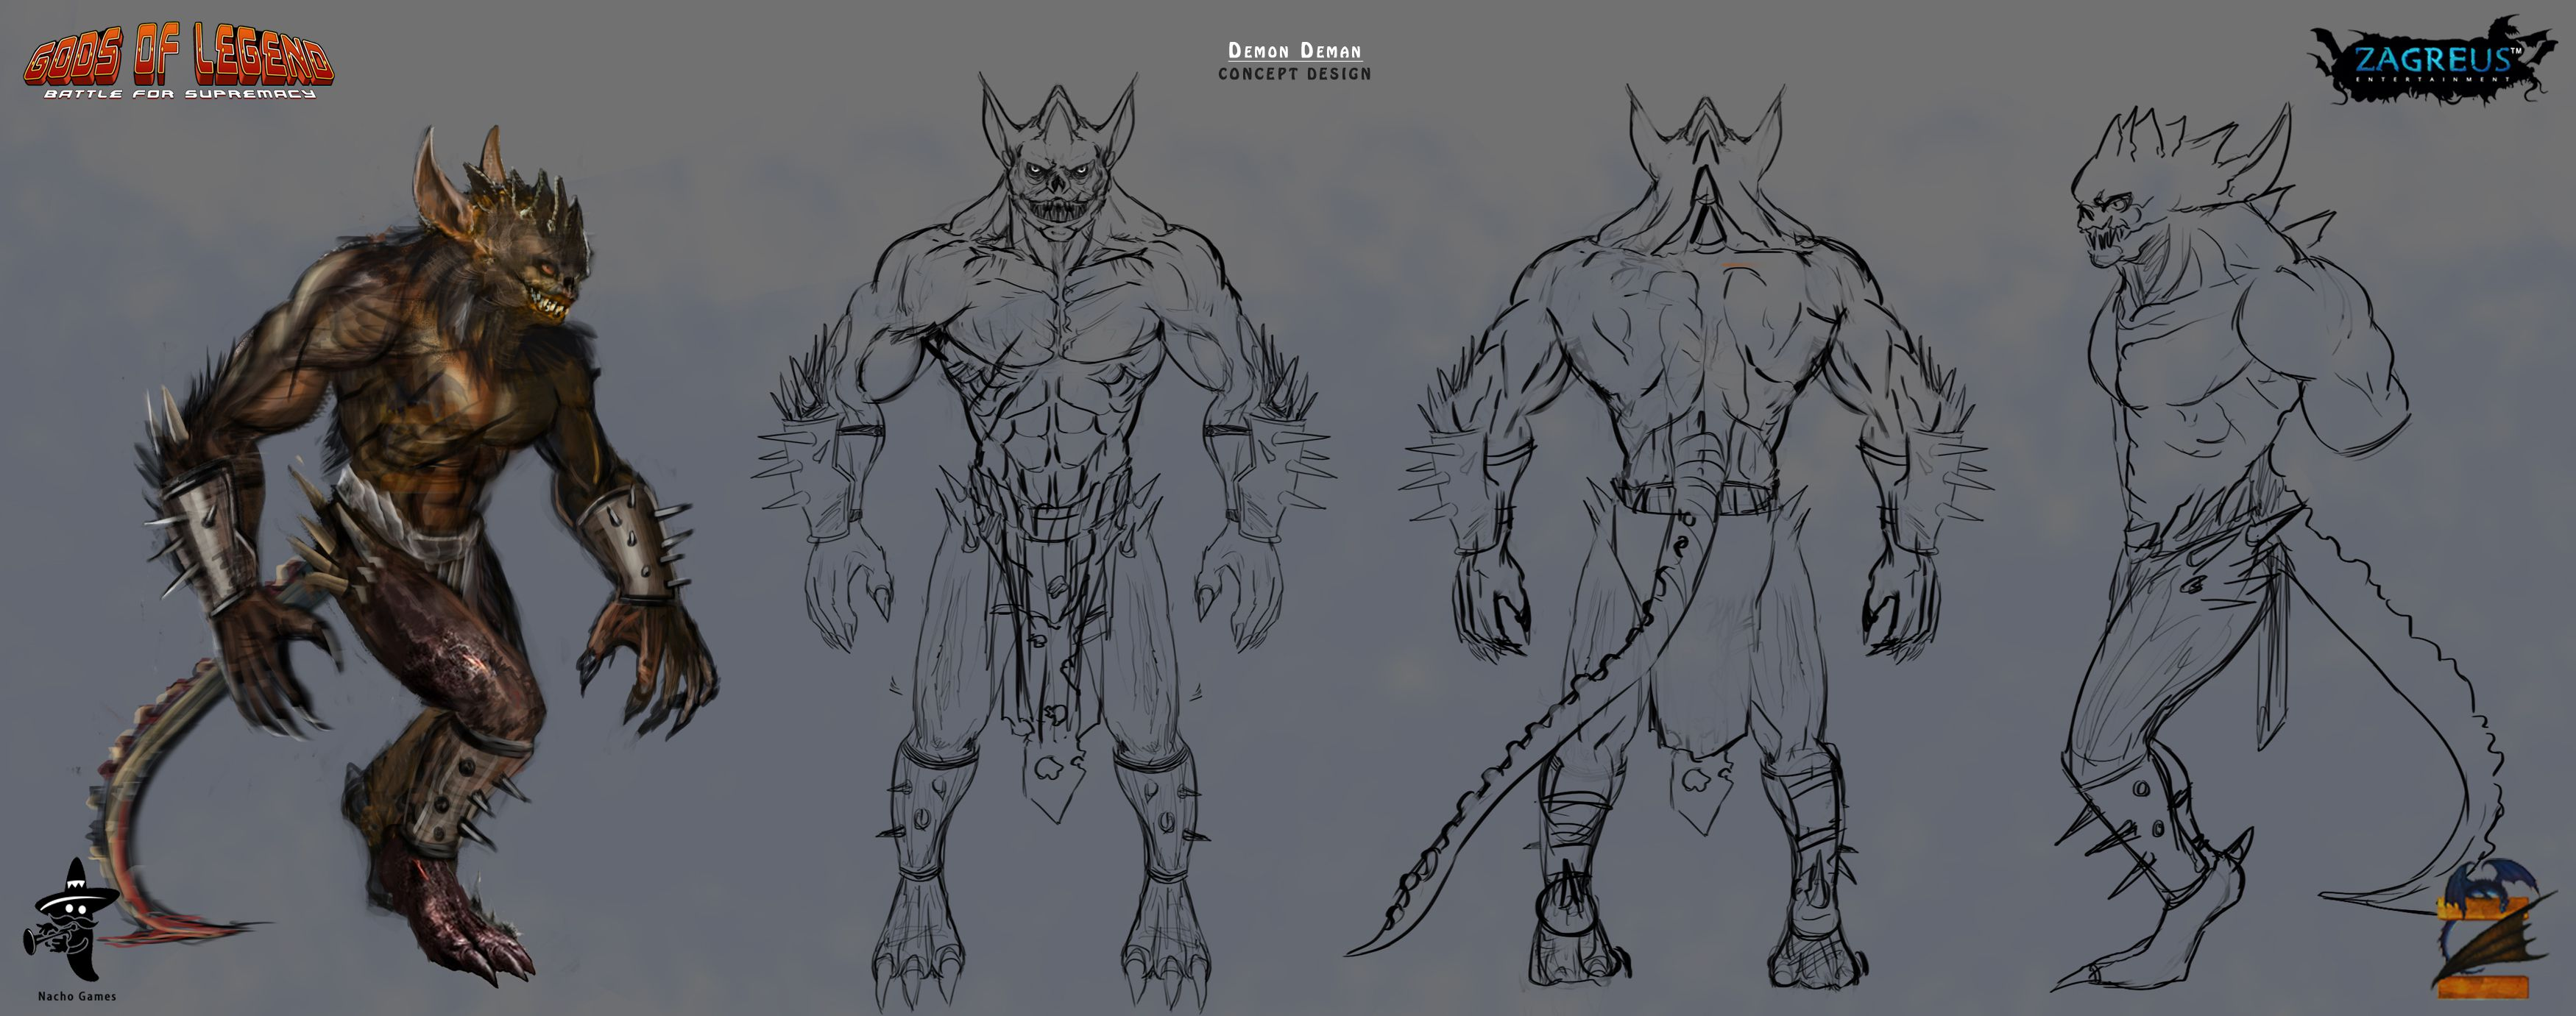 demon-deman-blueprint_ze.jpg